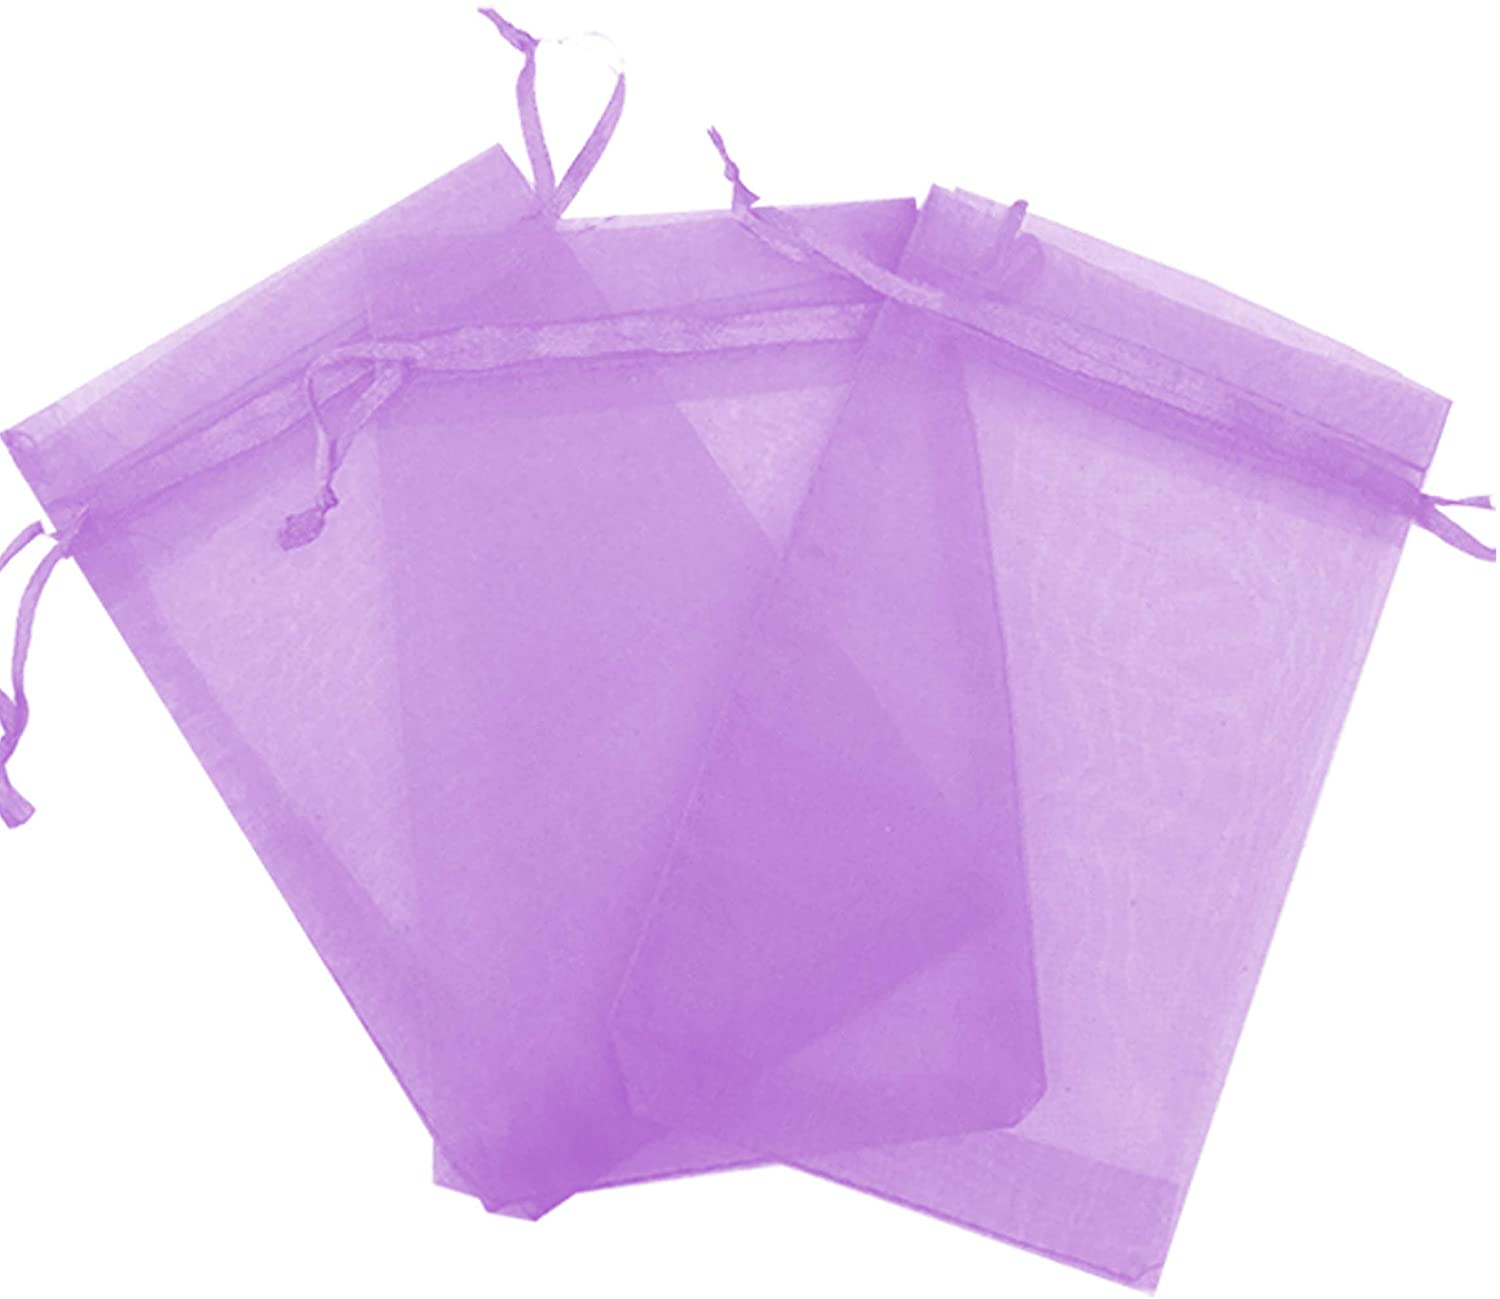 200 Pcs Lavender 3x4 Sheer Drawstring Organza Bags Jewelry Pouches Wedding Party Favor Gift Bags Gift Bags Candy Bags [Kyezi Design and Craft]